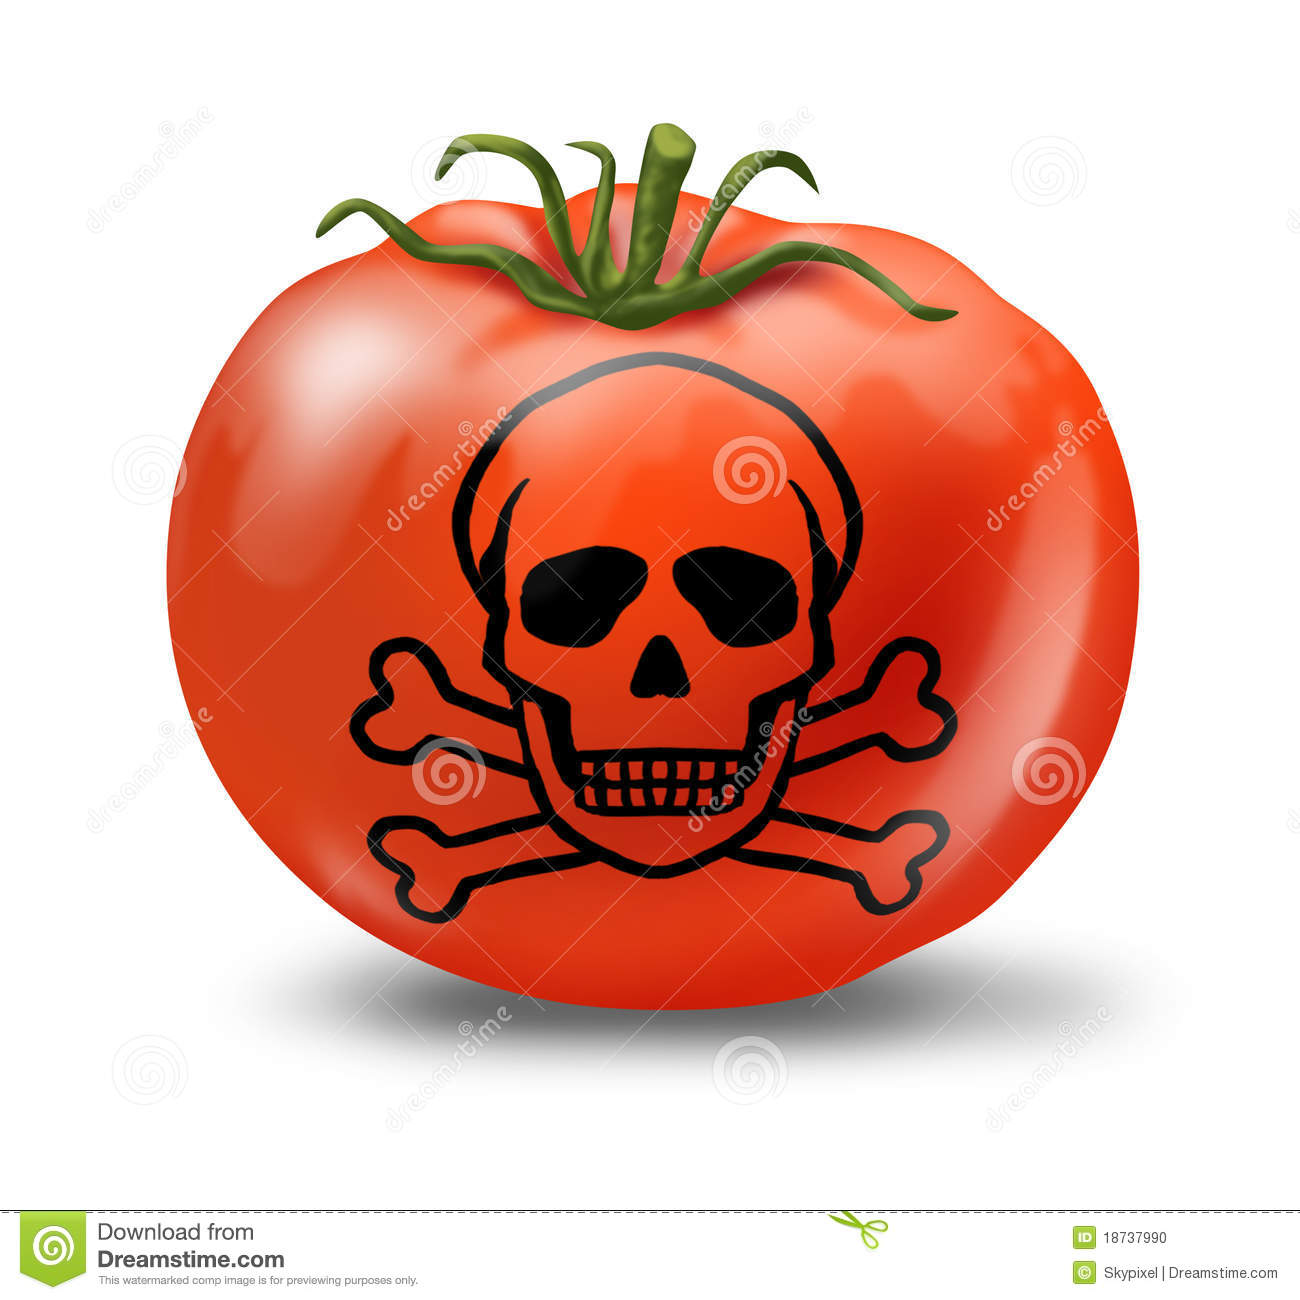 Contaminated Food Stock Photos, Images, & Pictures.